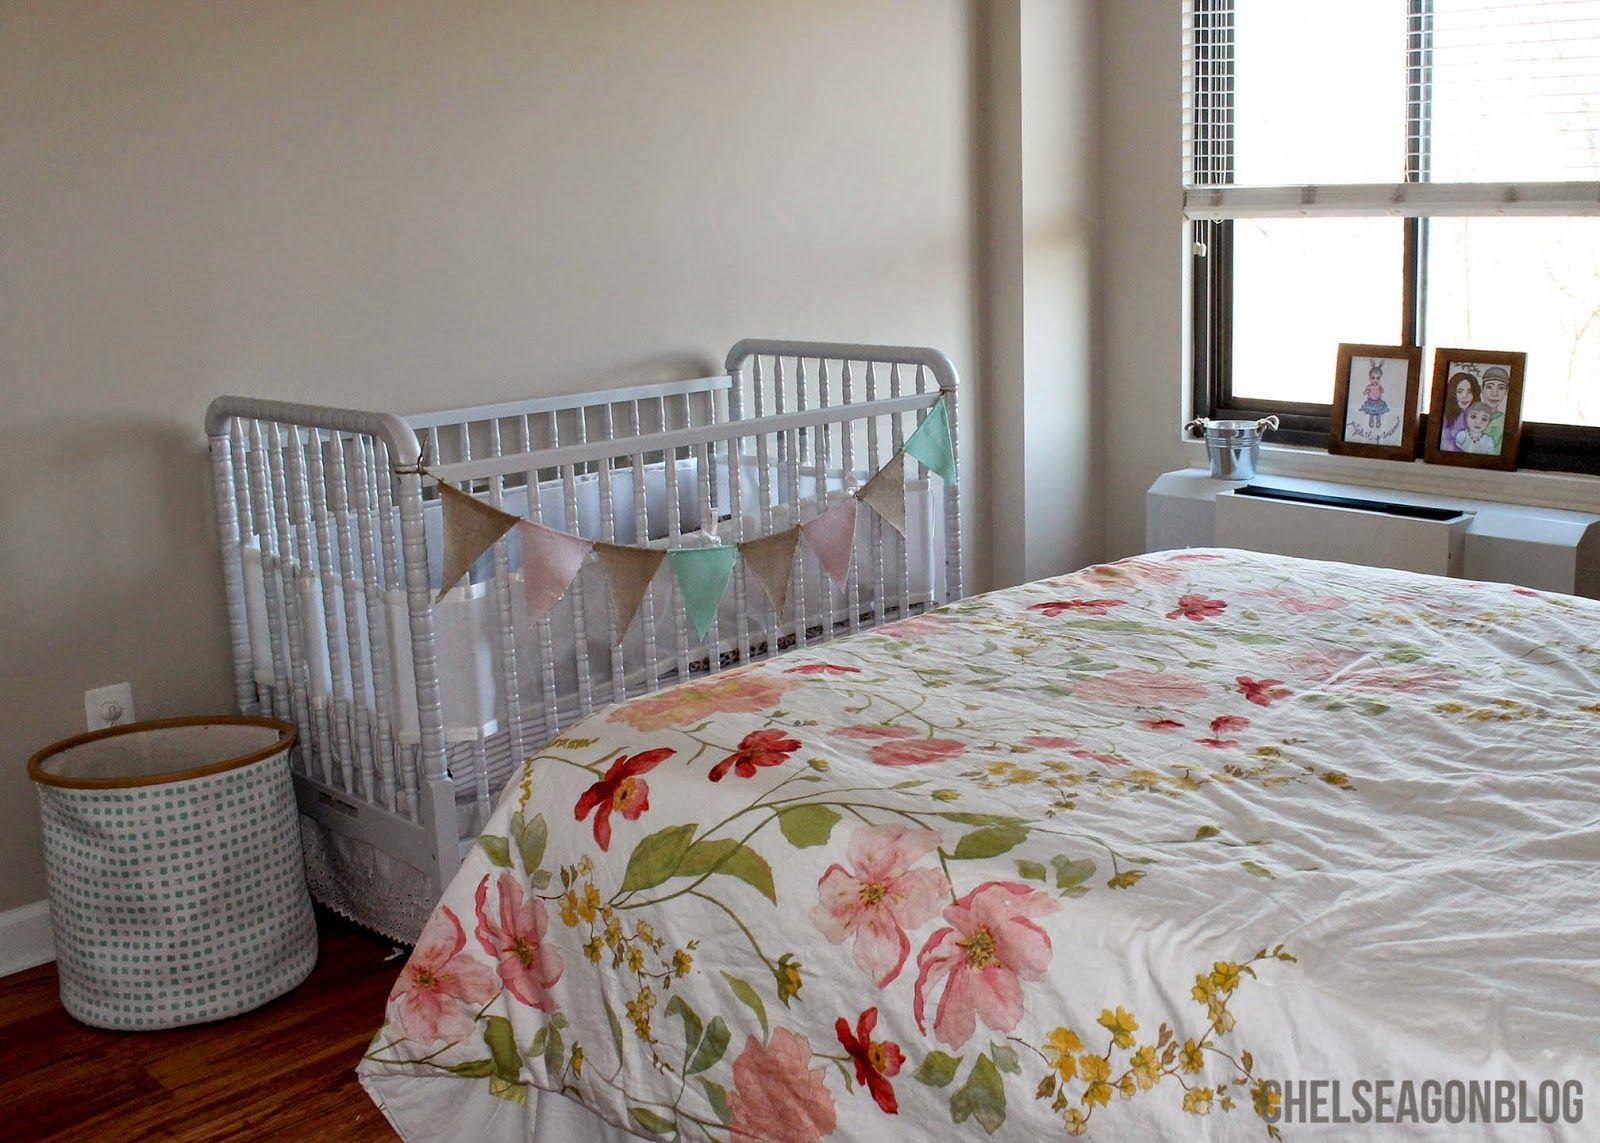 Chelsea Gon Blog: Third home- third master bedroom.  Target, budget, home decor, marshalls, inspiration, neutral color scheme, IKEA, Jenny Lind, crib, gray, babies r us,